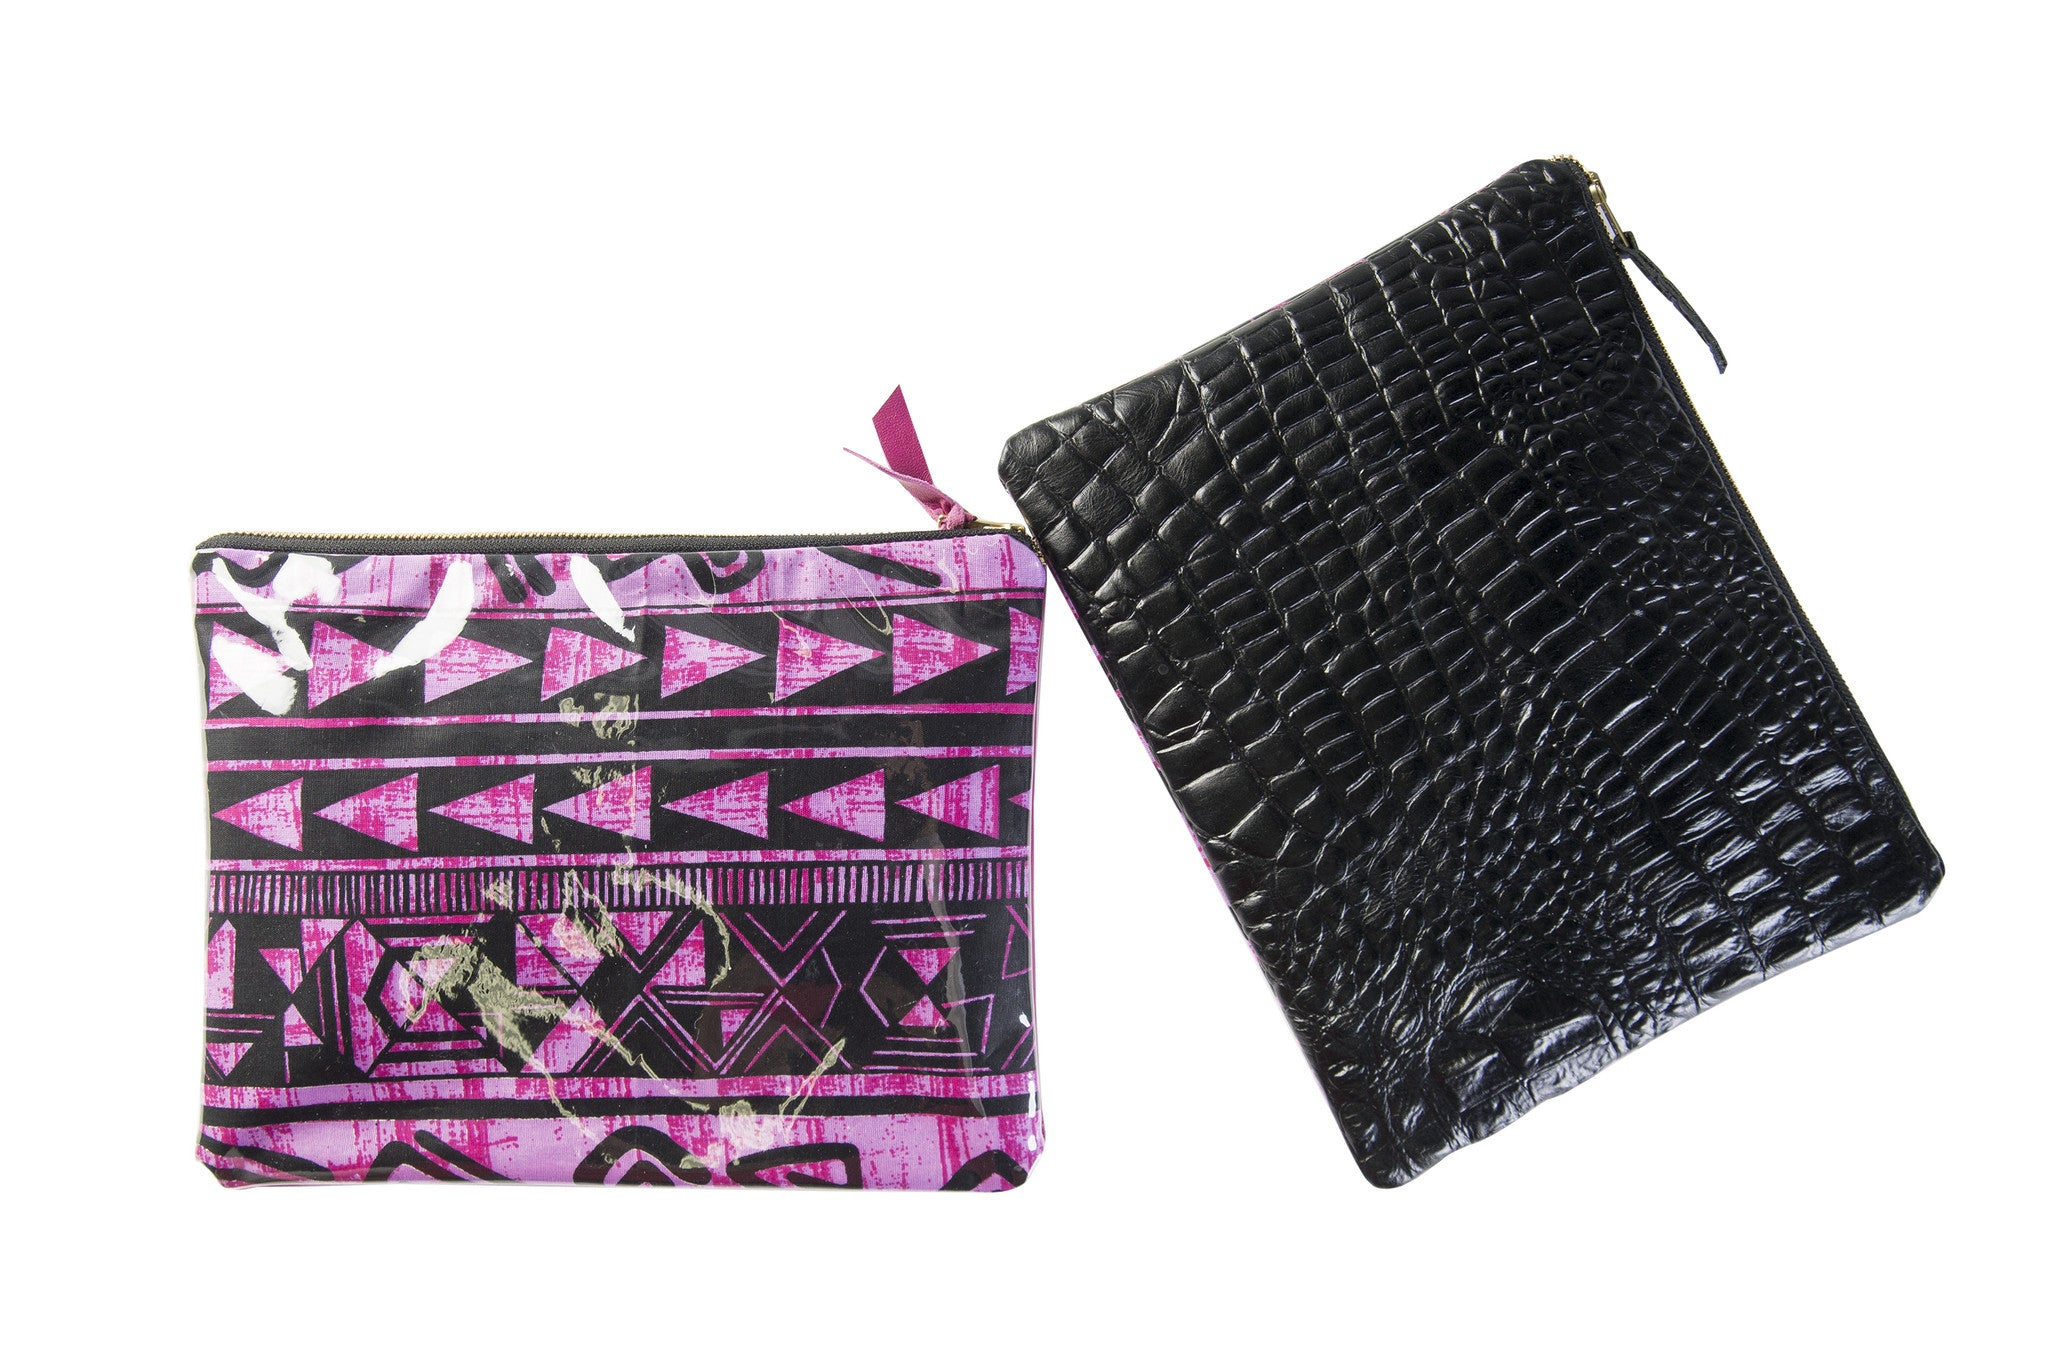 Embossed leather pouch clutch